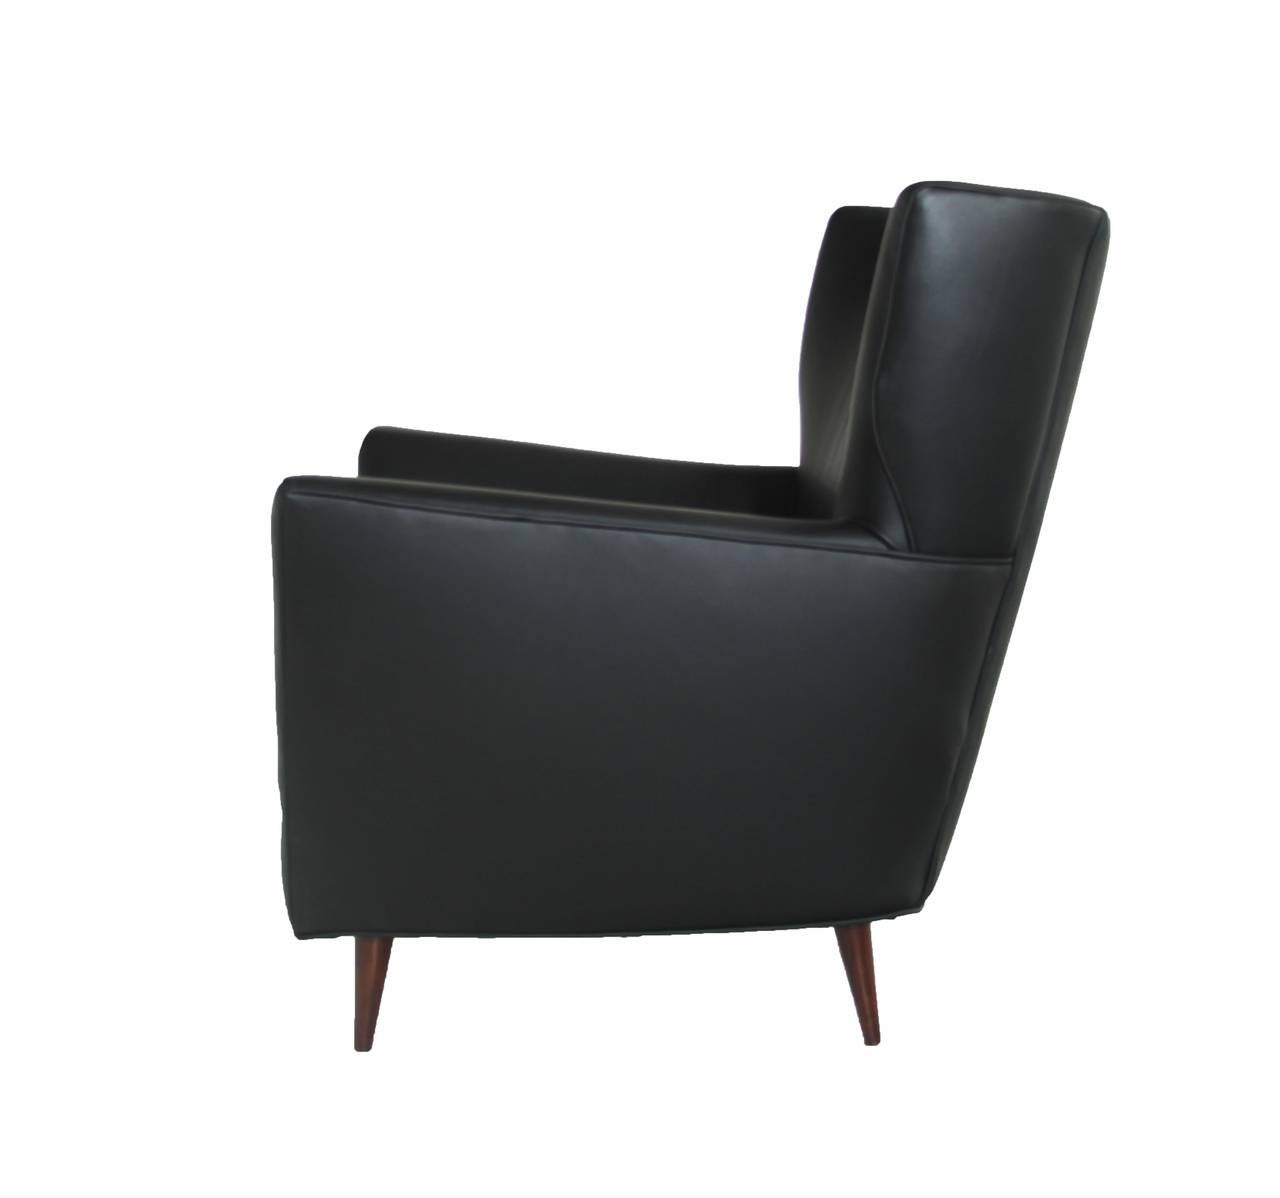 Black Leather Armchair Club Chair with Lathed Wood Legs by Joaquim Tenreiro In Good Condition For Sale In Los Angeles, CA